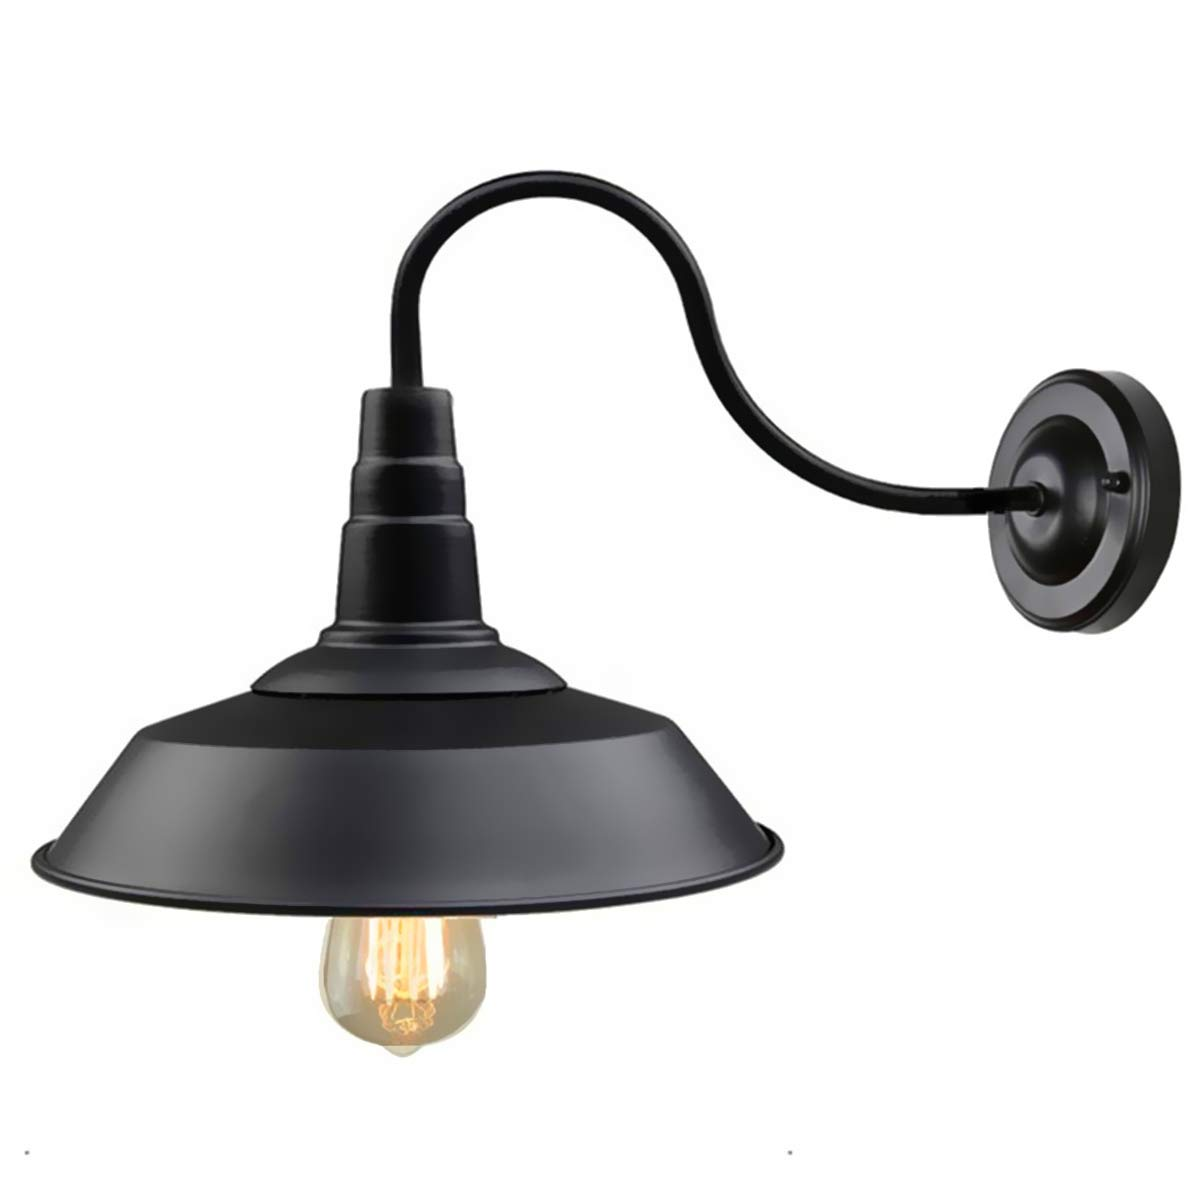 Details about retro black wall sconce lighting gooseneck barn lights industrial vintage